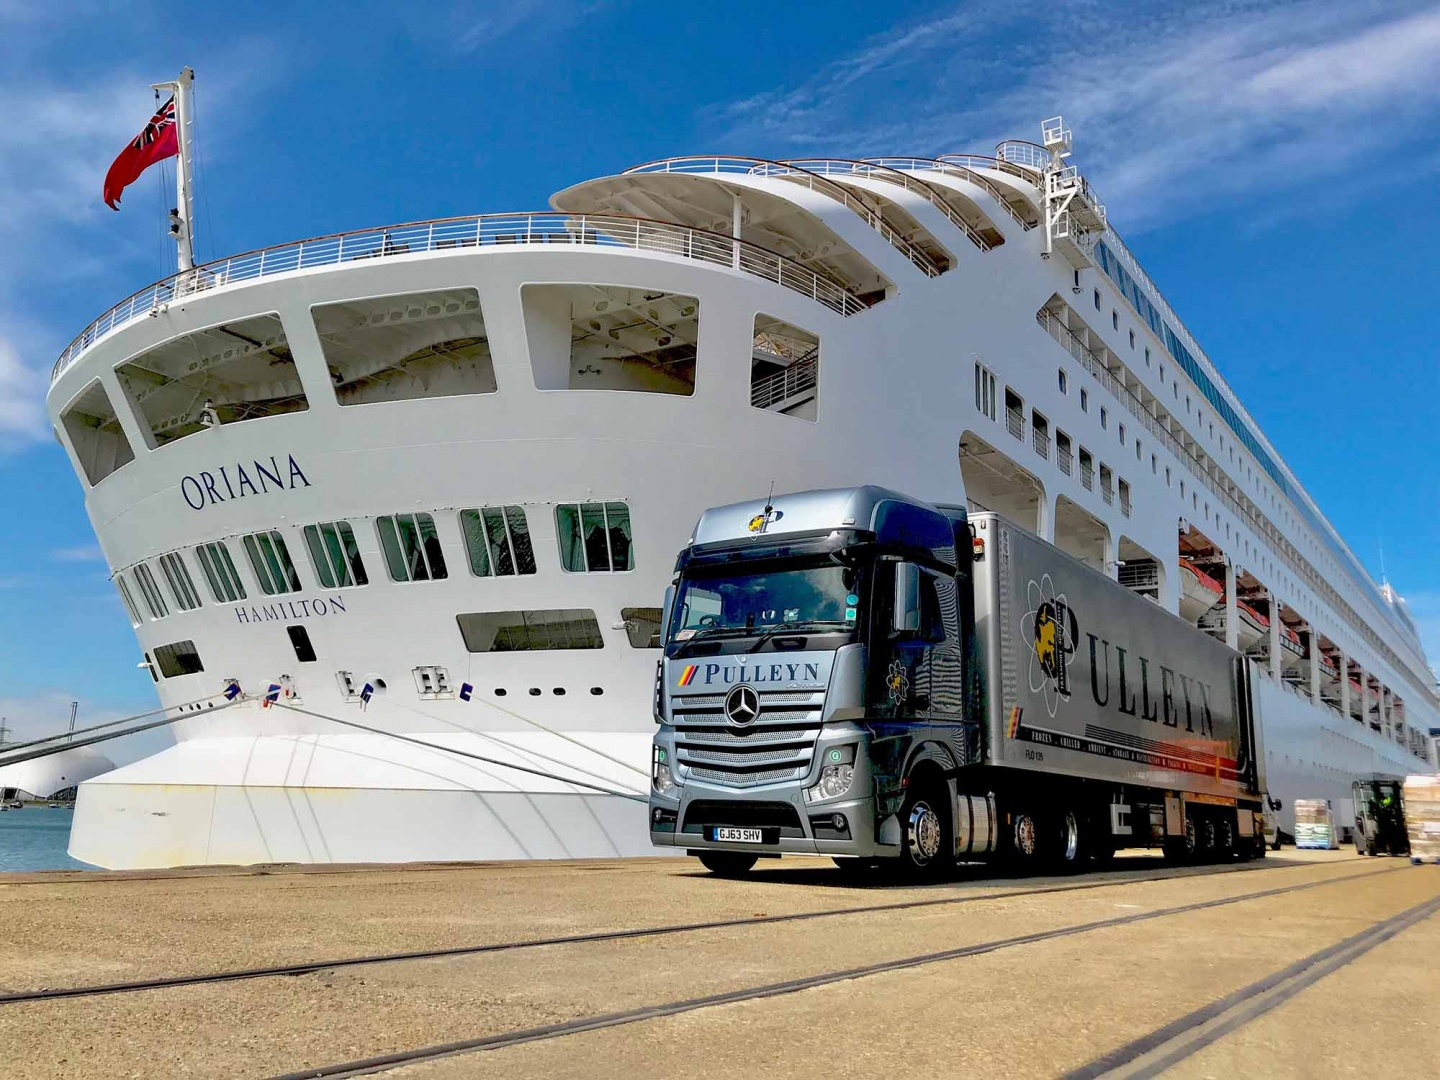 Pulleyn Transport delivering fresh product to Oriana